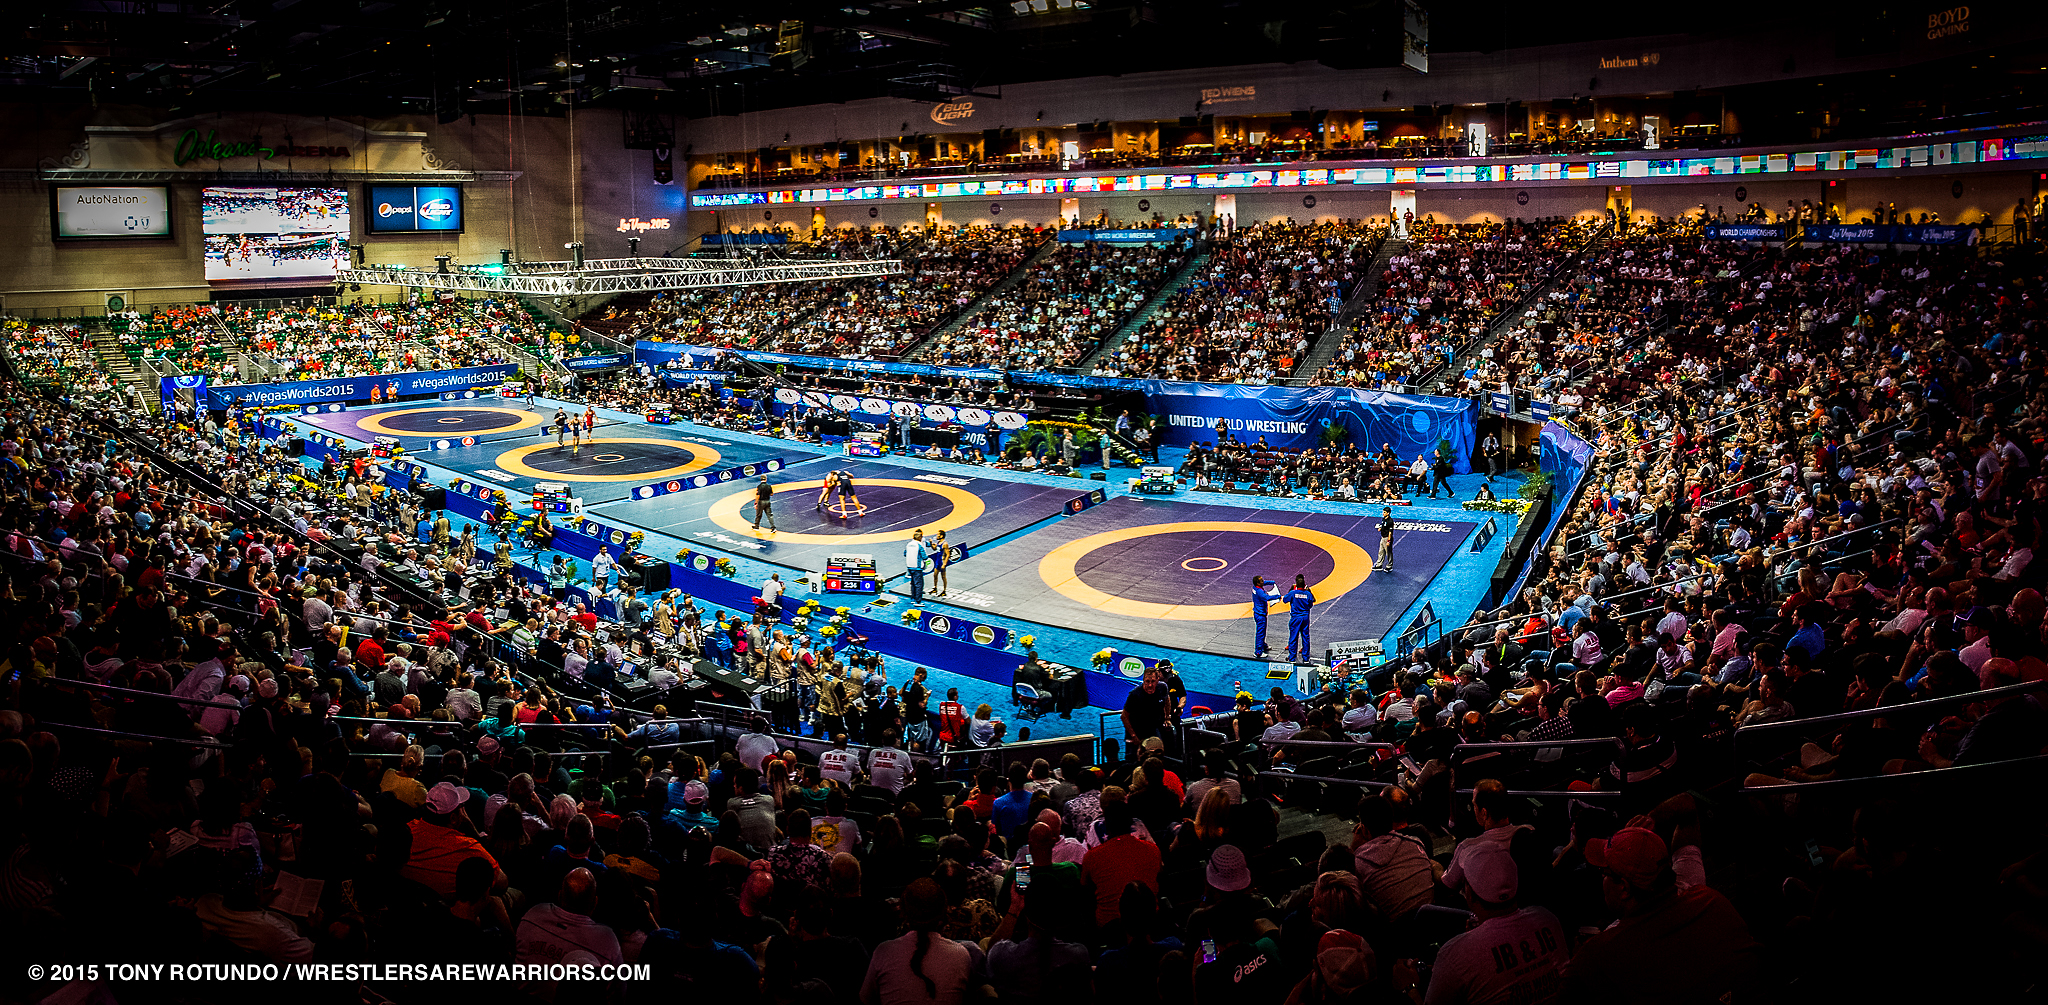 2015 WORLD CHAMPIONSHIPS - WRESTLING, LAS VEGAS. KOM Sports Marketing was retained by USA Wrestling and Las Vegas Events as the marketing & communications agency for the World Championships at Orleans Arena, September 2015. KOM worked with USA Wrestling  and its international federation United World Wrestling on new dynamic Look & Feel for the event incorporating giant video boards, digital entrance arch, etc. Working back with Las Vegas Events, KOM created a robust presence marketing plan with pre-event camps  & clinics which included an innovative partnership with the UFC (which some had some of its athletes, which were former USA Wrestling National Team members, appear). KOM also created a multi-tiered targeted ticket campaign which hit a core audience in the  U.S. and offered up travel-destination packages internationally. KOM build out the first in-arena Fanfest. The results: the final four nights were sell outs, international TV hit 142 countries, and the dynamic venue presentation broke new ground for a sport  looking to be re-energized after almost being eliminated from the Olympic program in 2013.